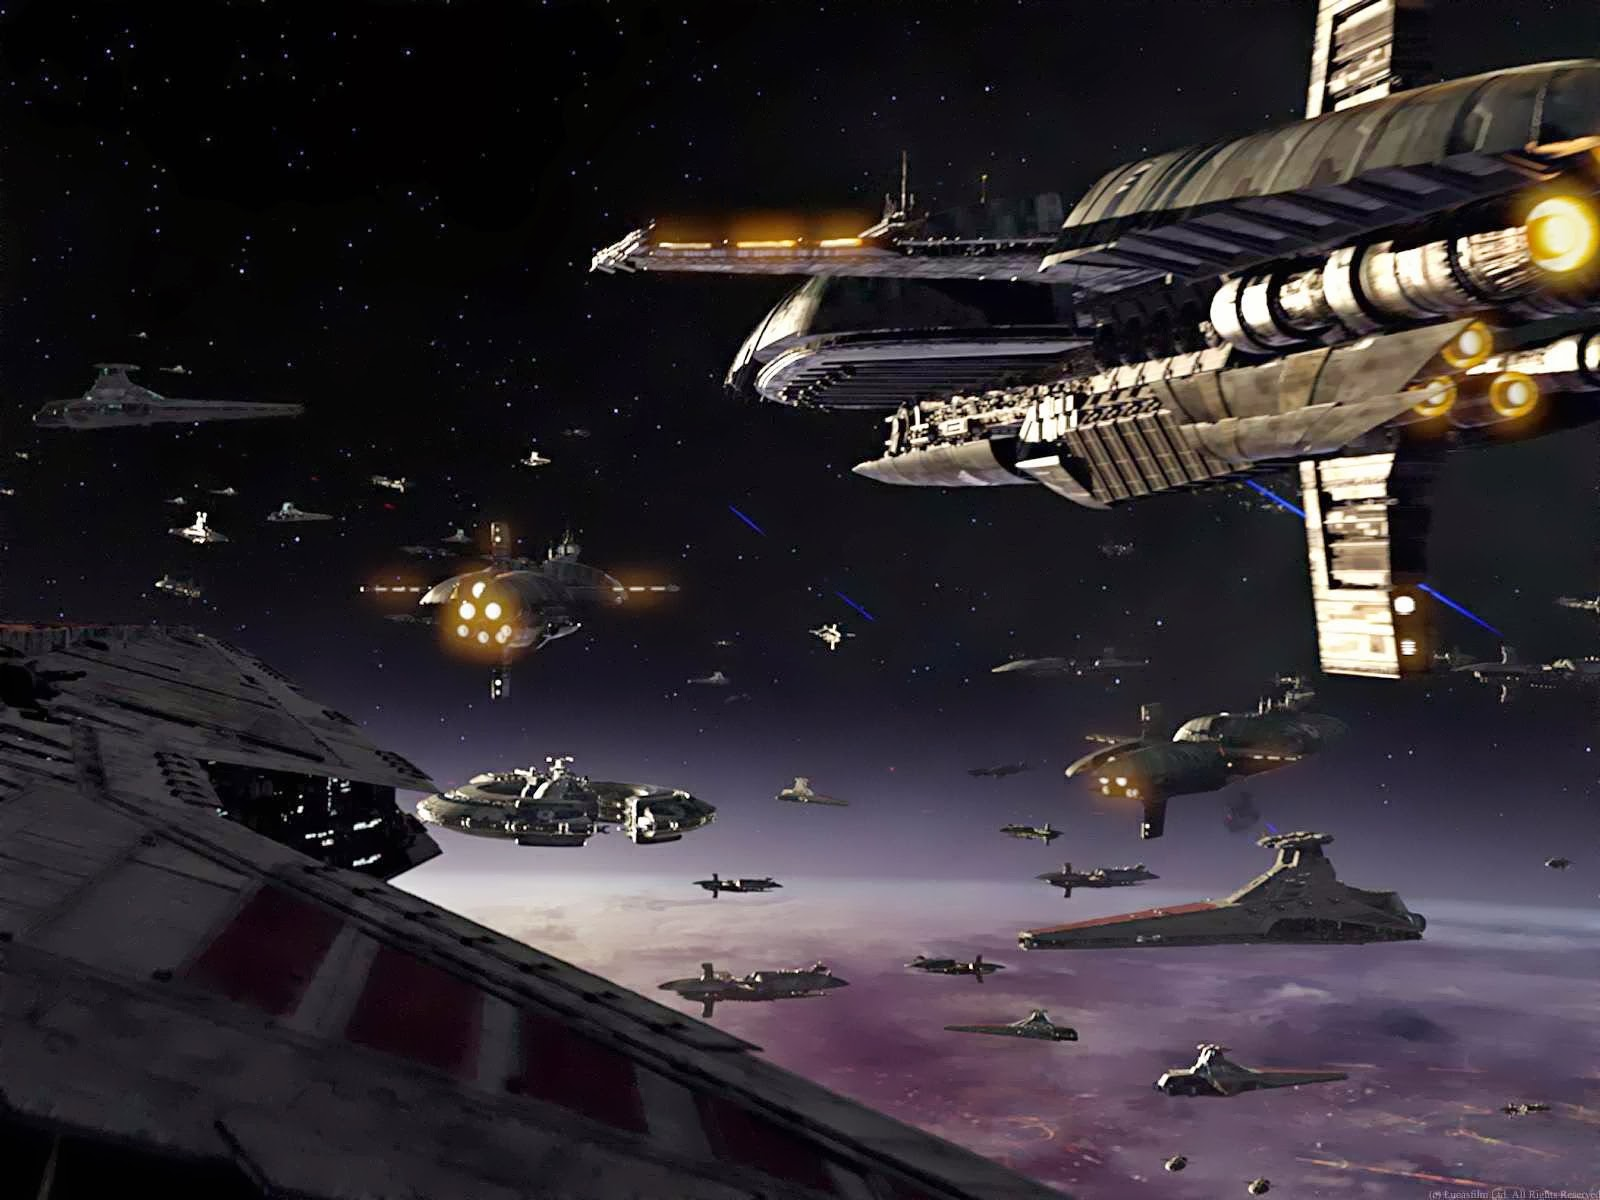 space battle wallpaper space wallpaper